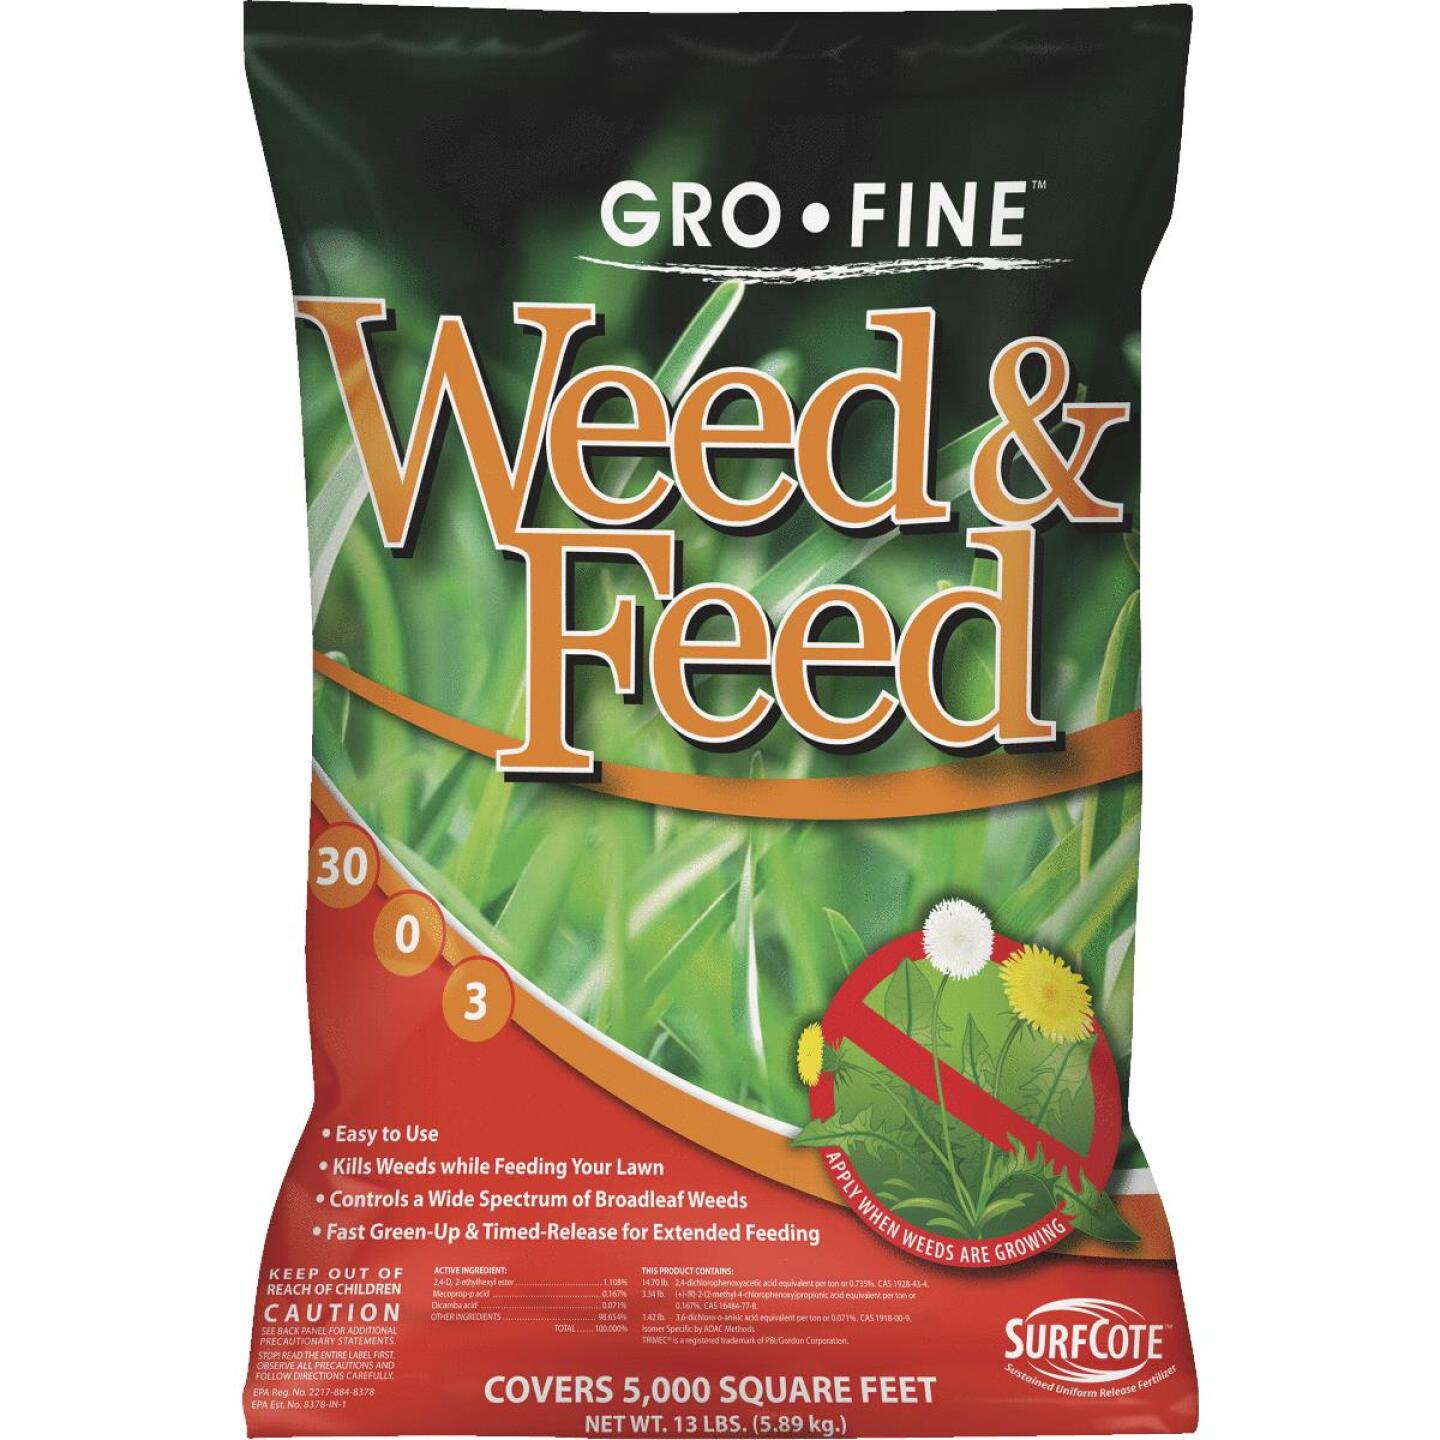 Gro-Fine Weed & Feed 13 Lb. 5000 Sq. Ft. 30-0-3 Lawn Fertilizer with Weed Killer Image 1